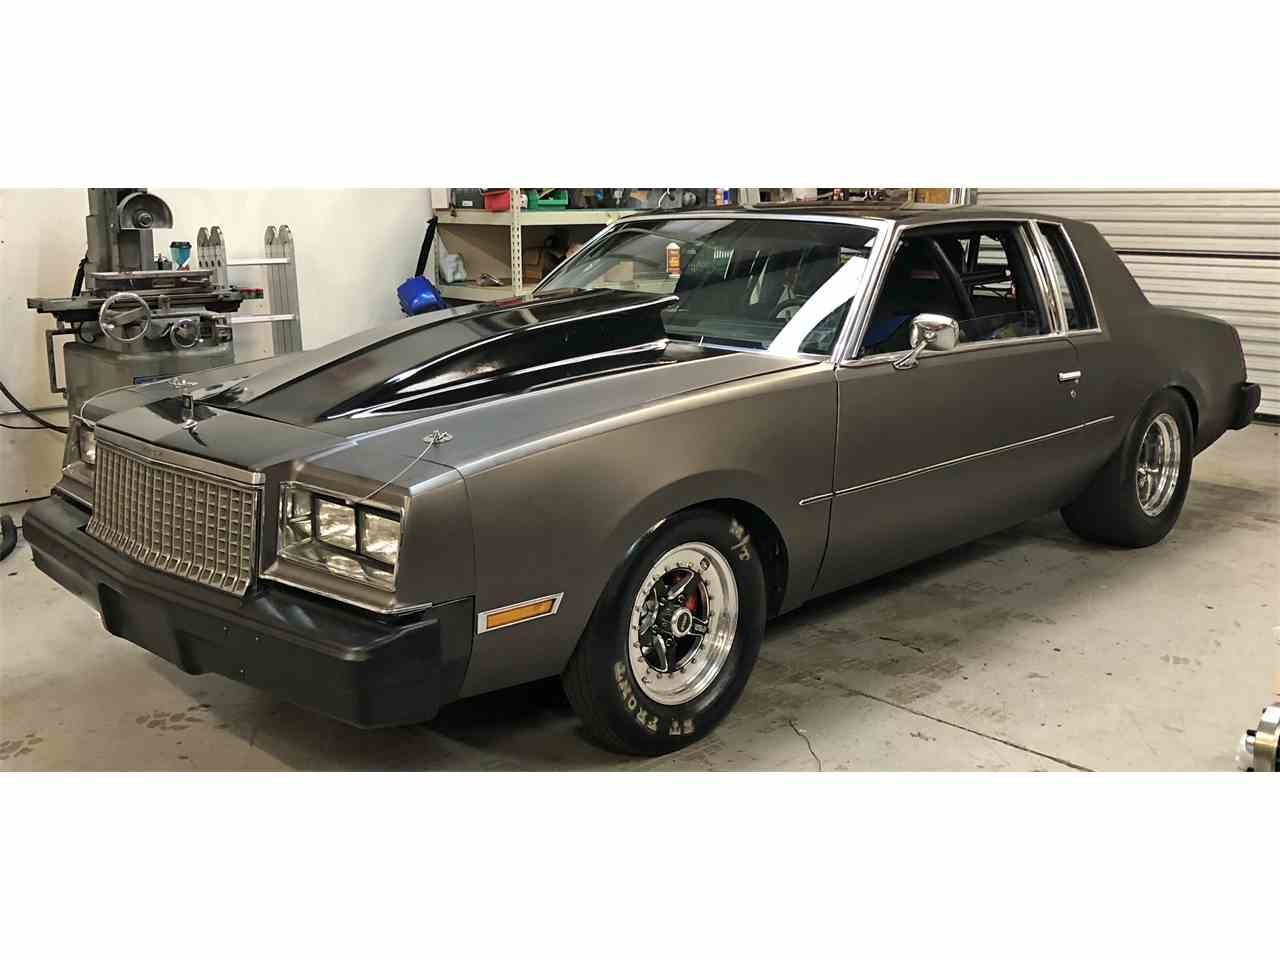 swap vehicle forums for classifieds with camaro ls firebird forum buick and regal sale